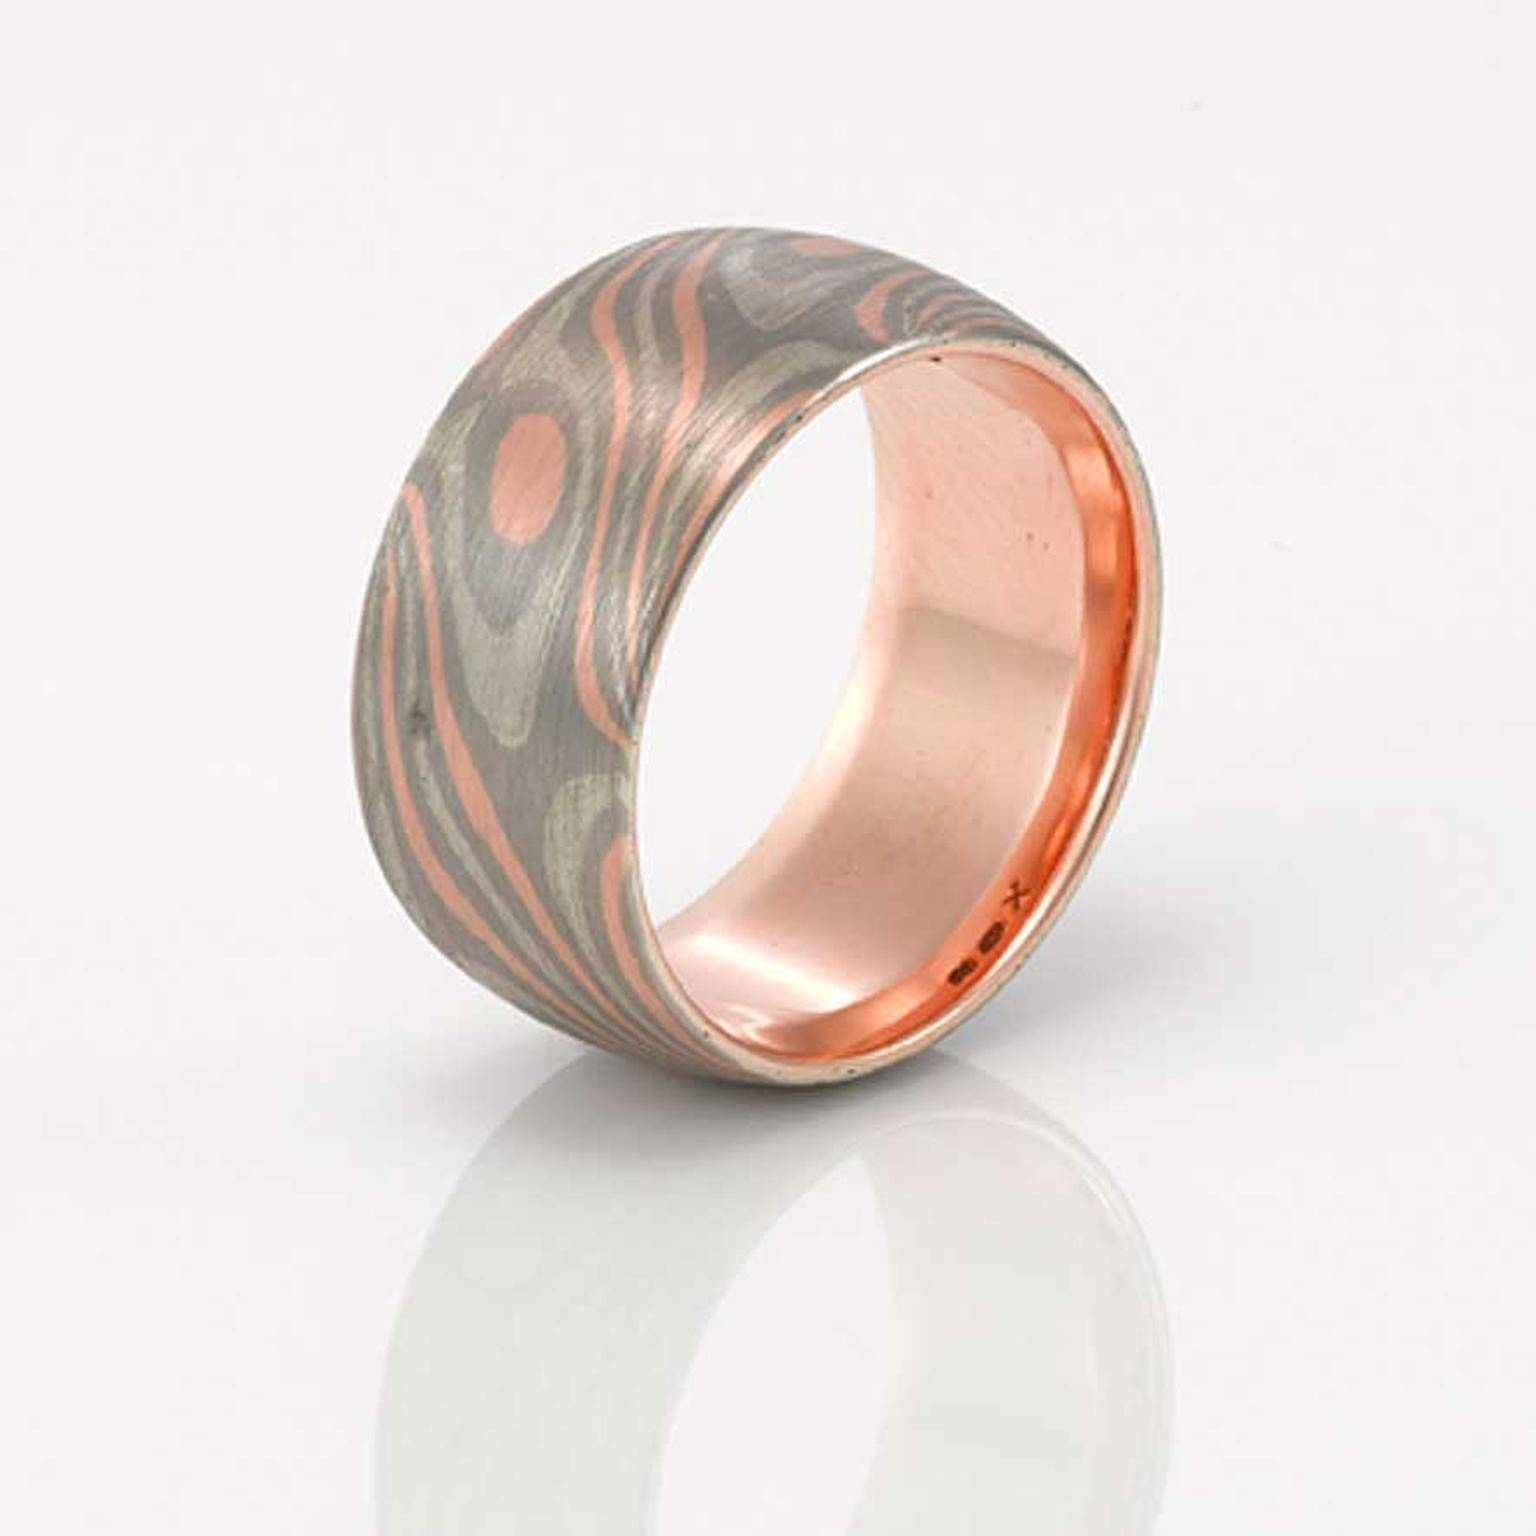 Apollo Men's Wedding Ring In Rose Gold, Palladium And Silver Inside Silver And Gold Mens Wedding Bands (View 7 of 15)